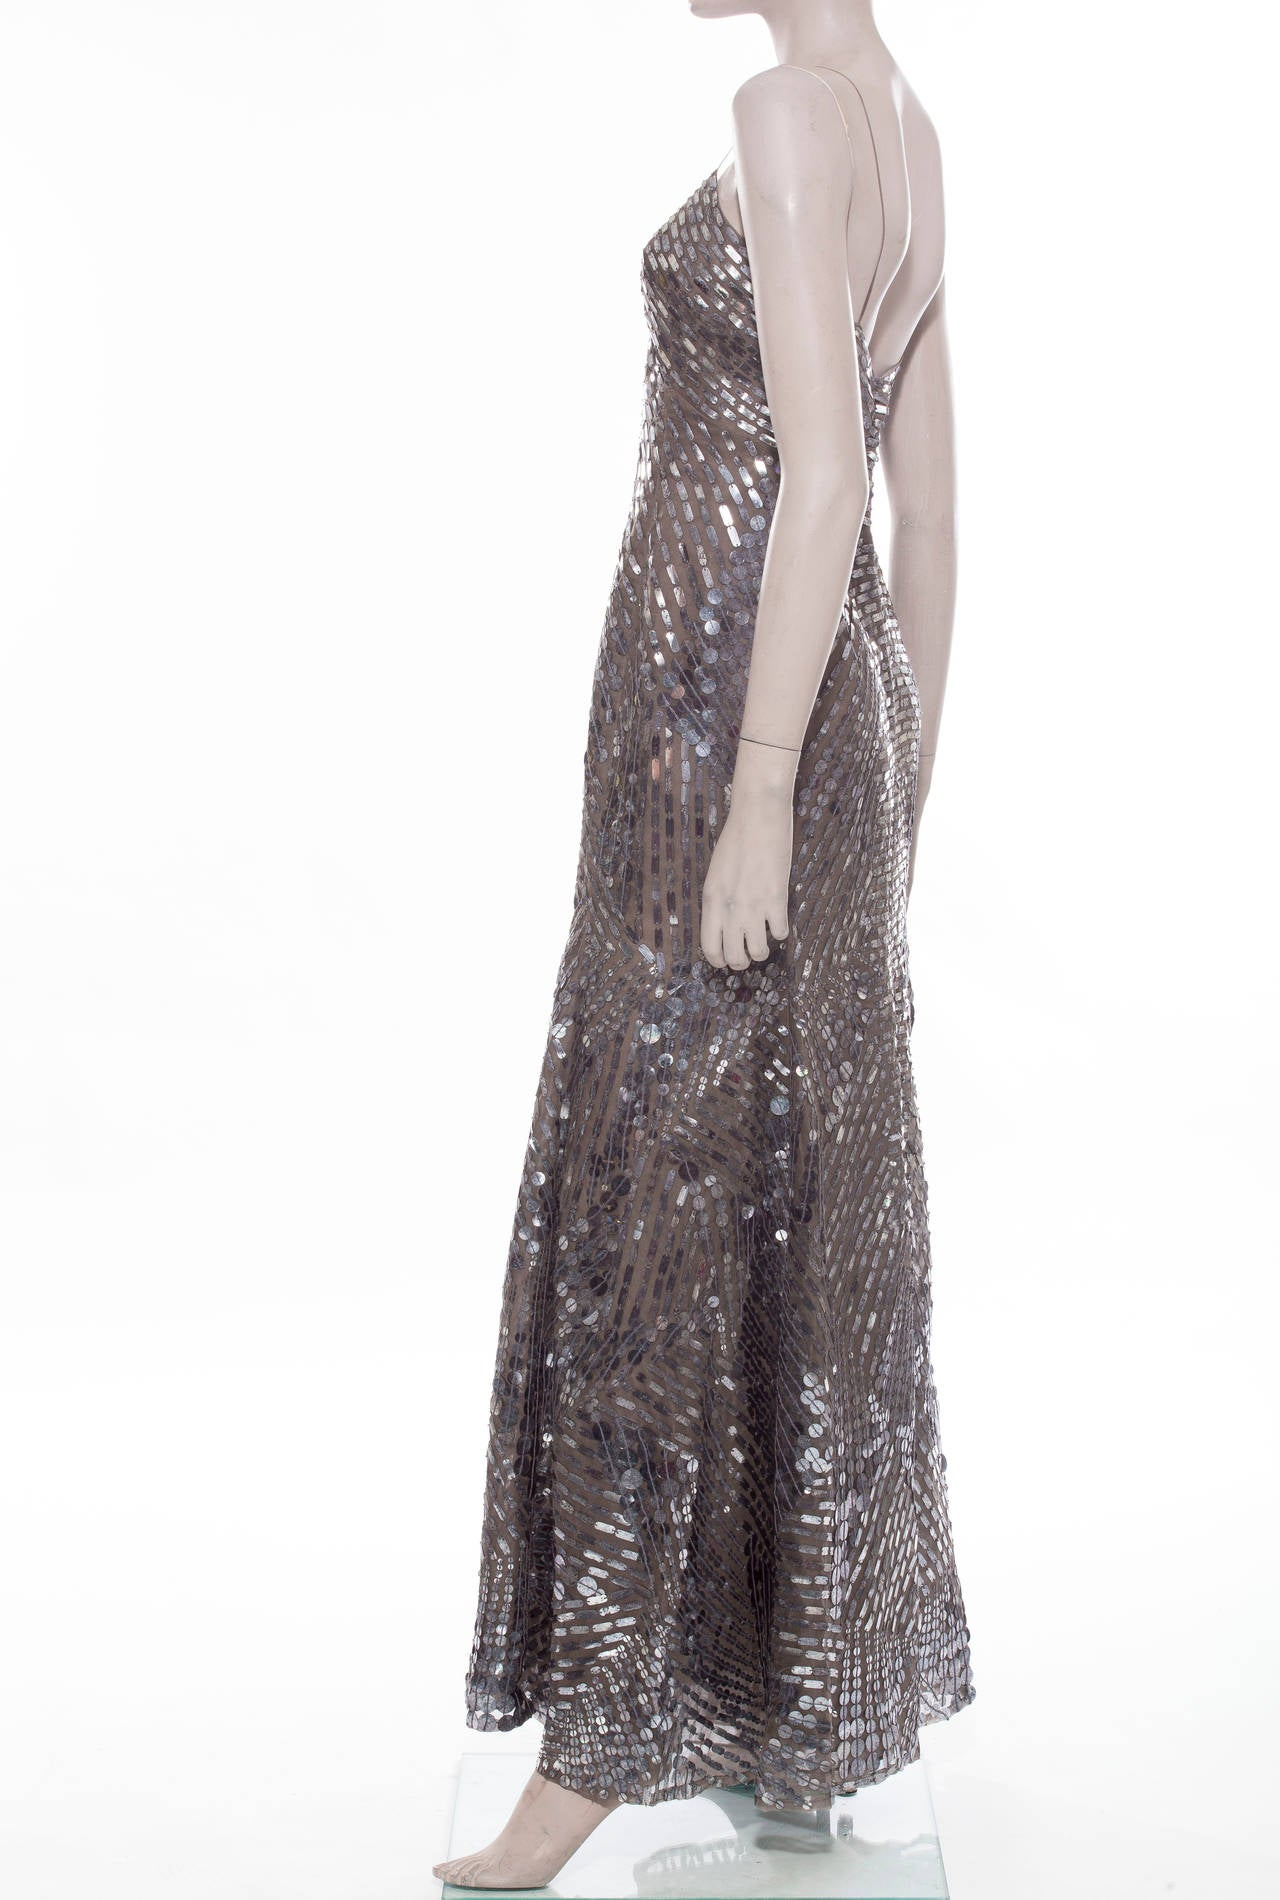 Oscar De la Renta Silk Evening Dress With Pewter Embellishments, Fall 2007 In Excellent Condition For Sale In Cincinnati, OH